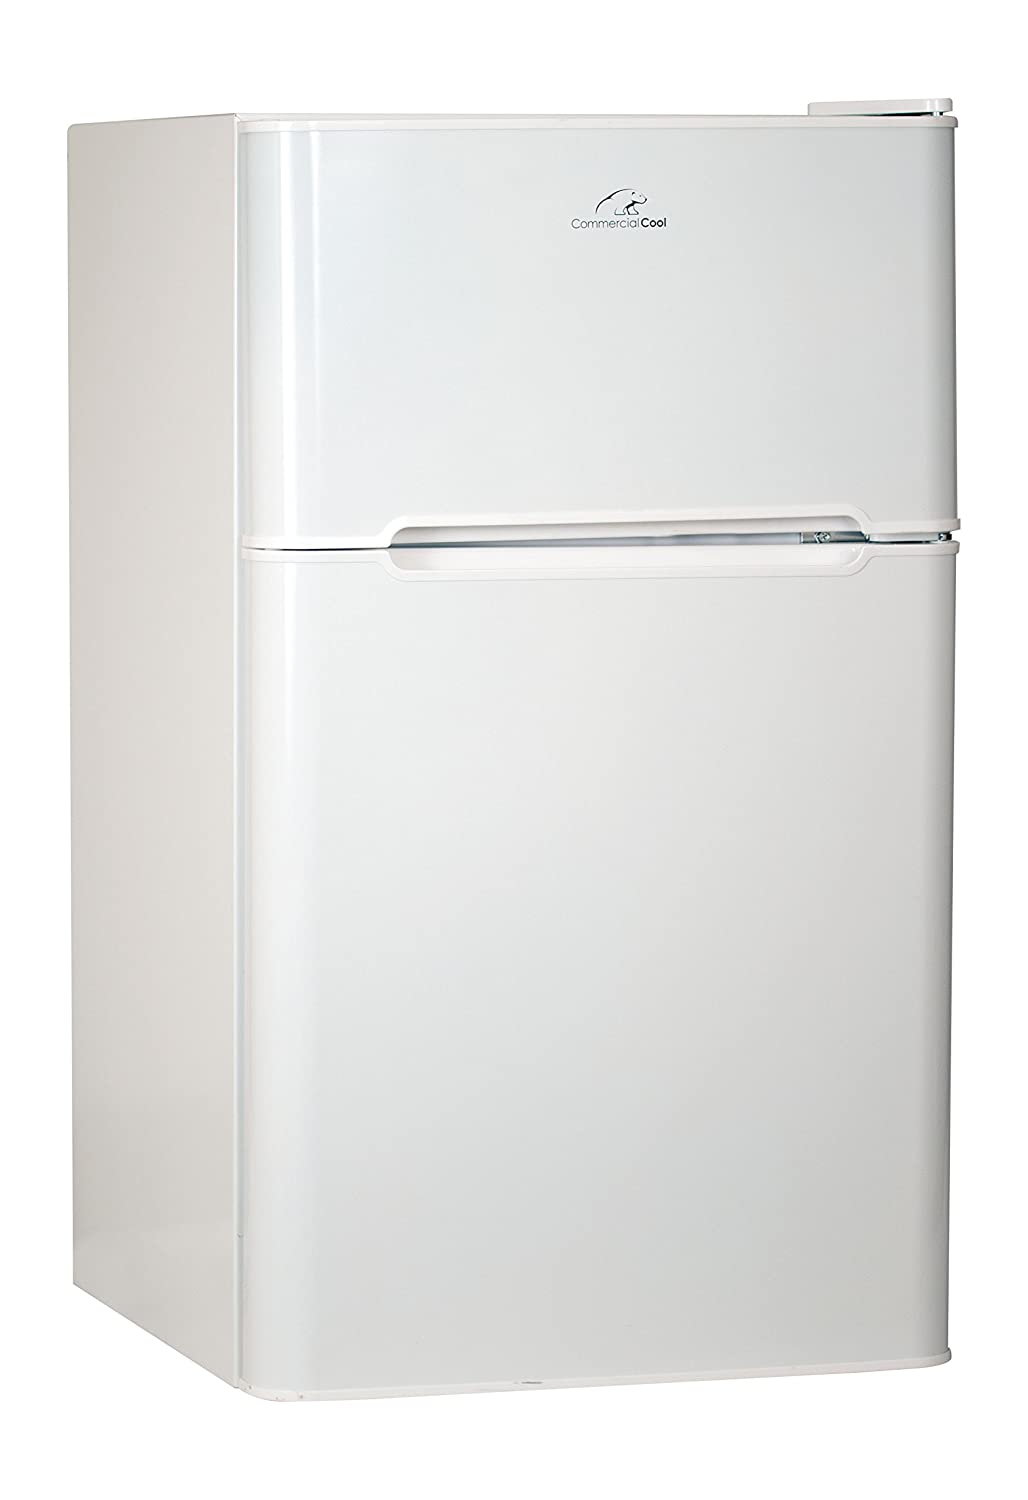 Commercial Cool CCRD32W Compact Double Door Refrigerator with True Freezer, 3.2 Cu. Ft. Mini Fridge, White